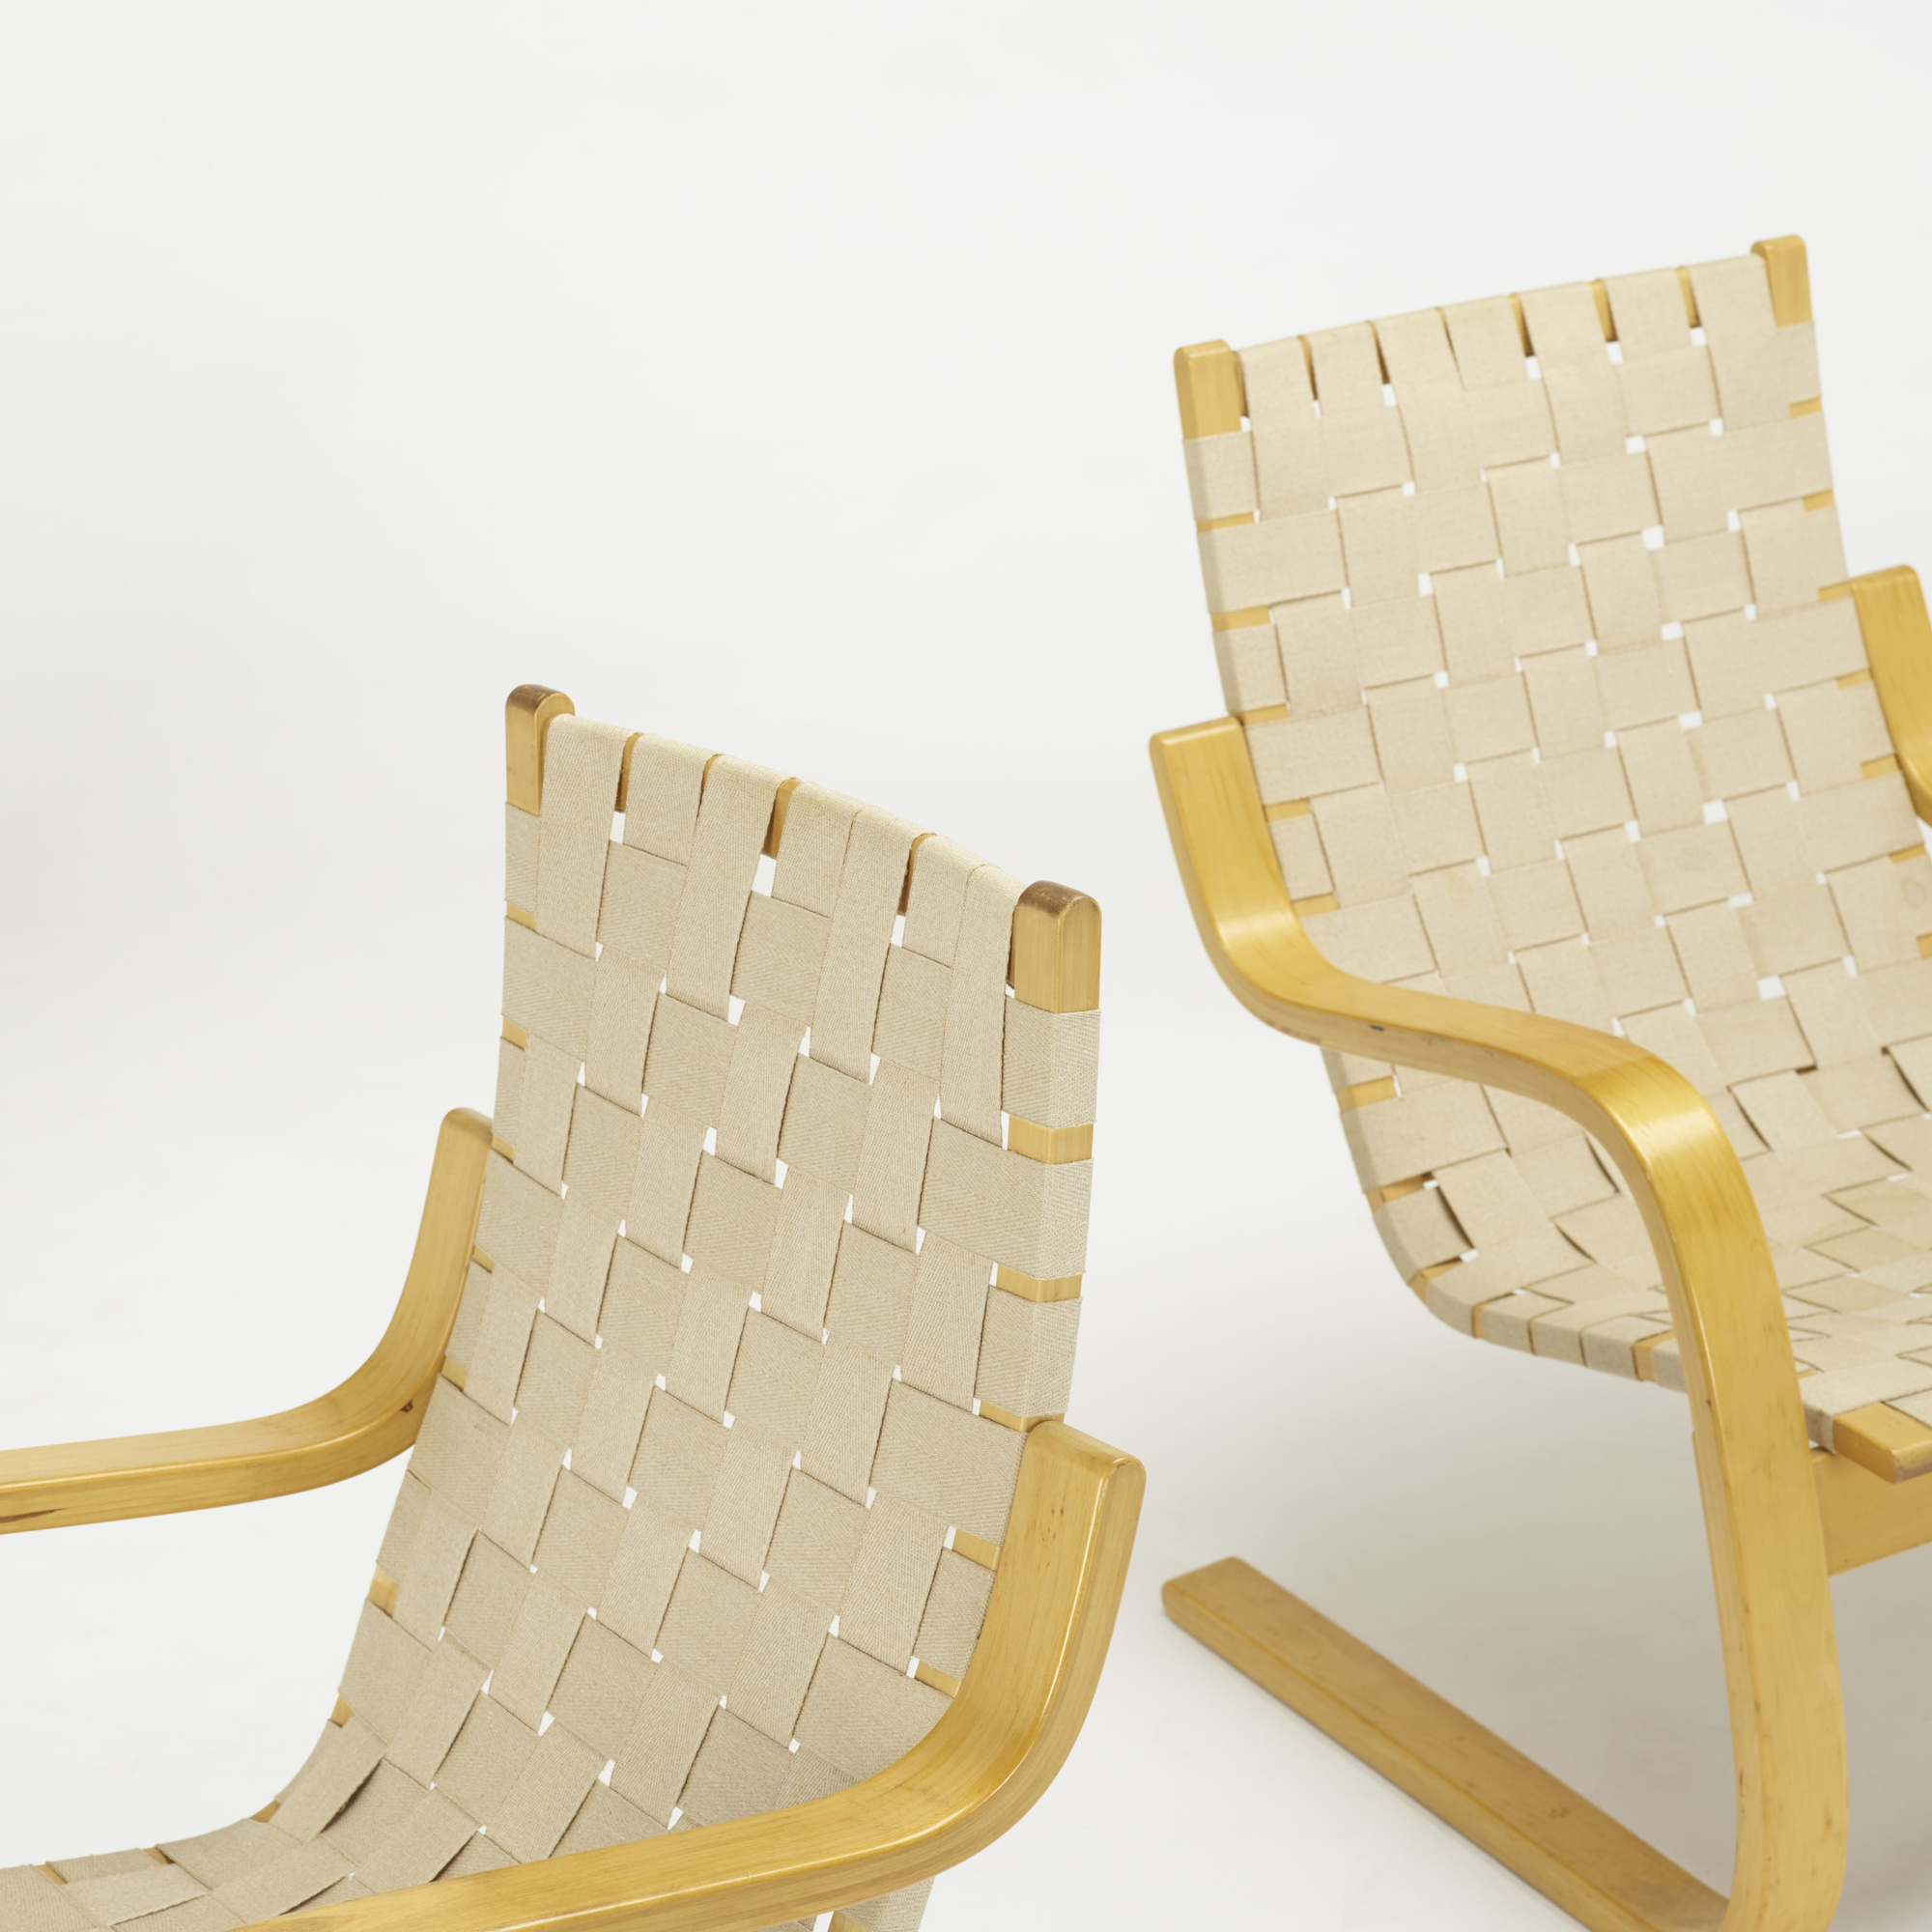 ... 237: Alvar Aalto / Cantilevered Chairs Model 406, Set Of Three (3 Of